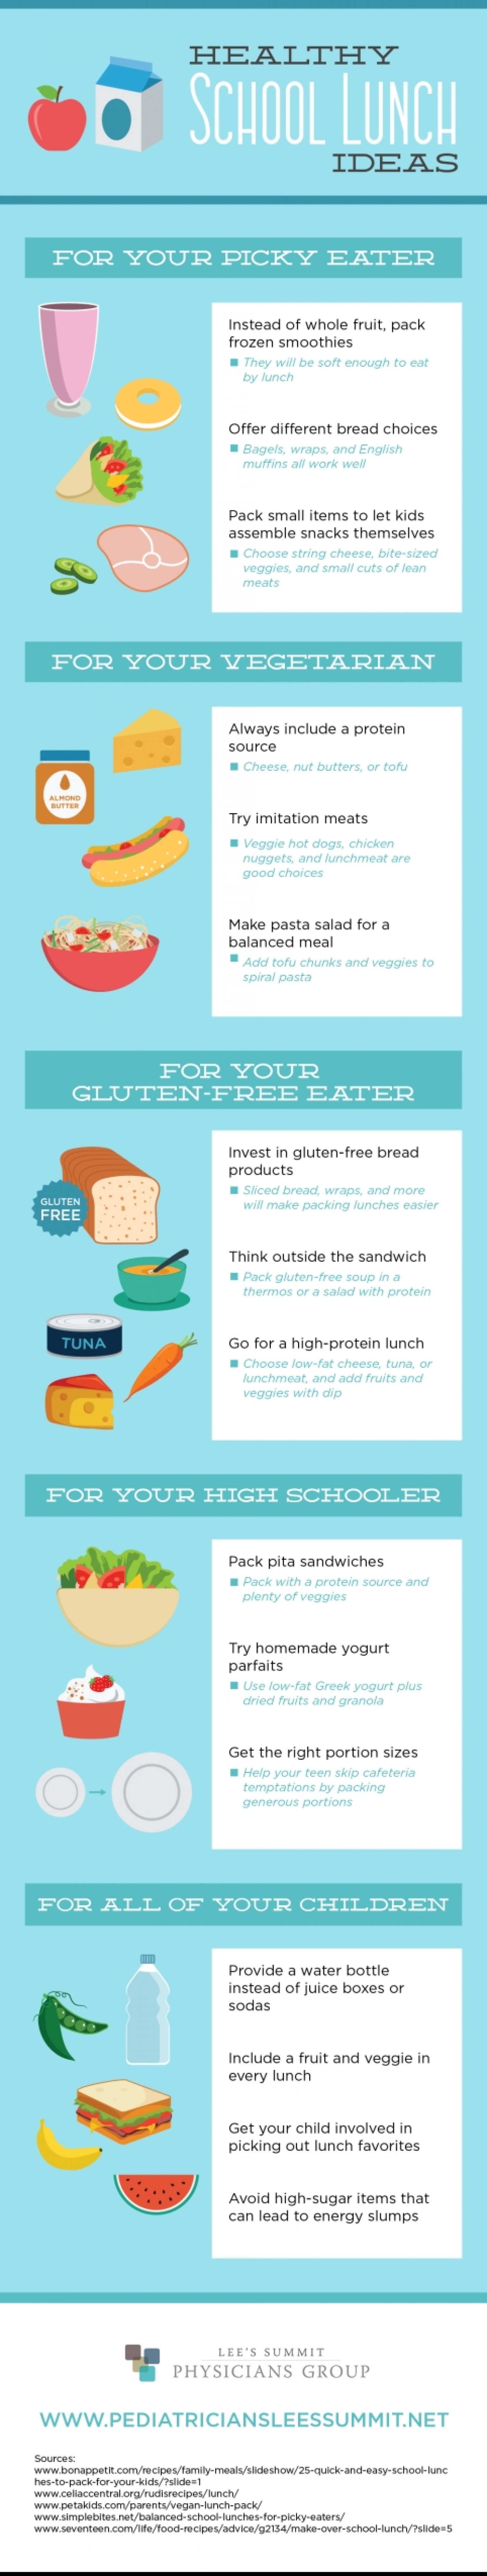 HEALTHY SCHOOL LUNCH IDEAS Infographic